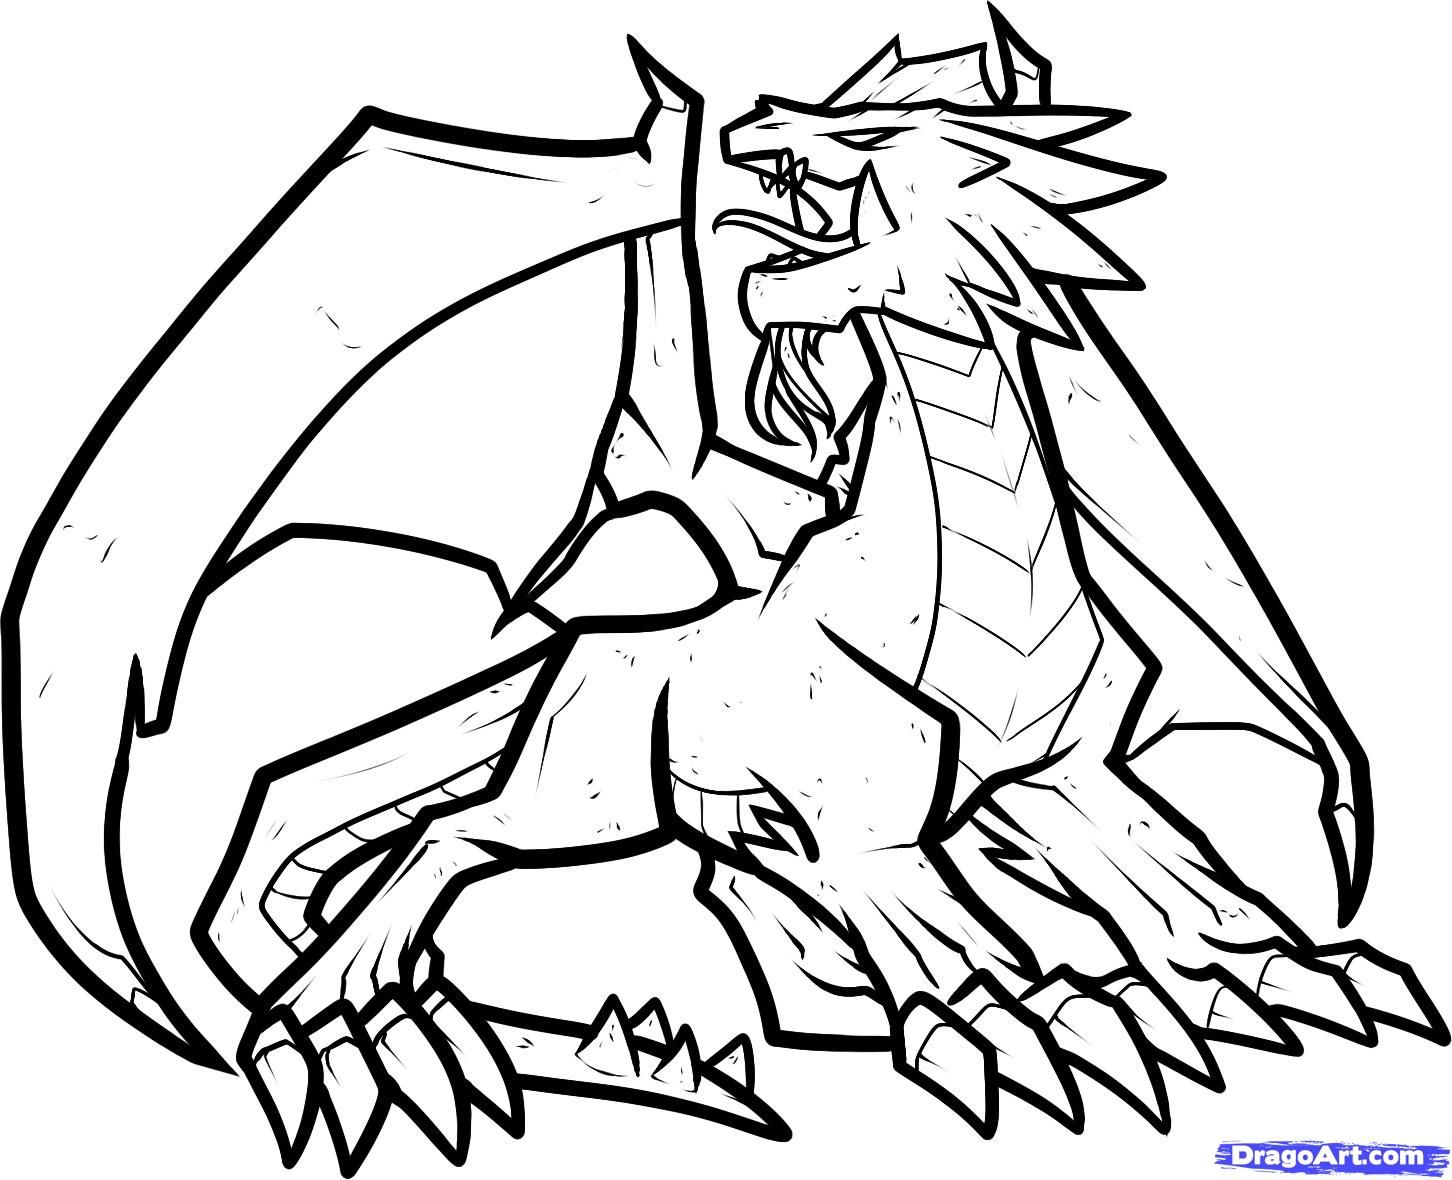 How To Draw A Fire Dragon Fire Dragon Red Dragon By Dawn